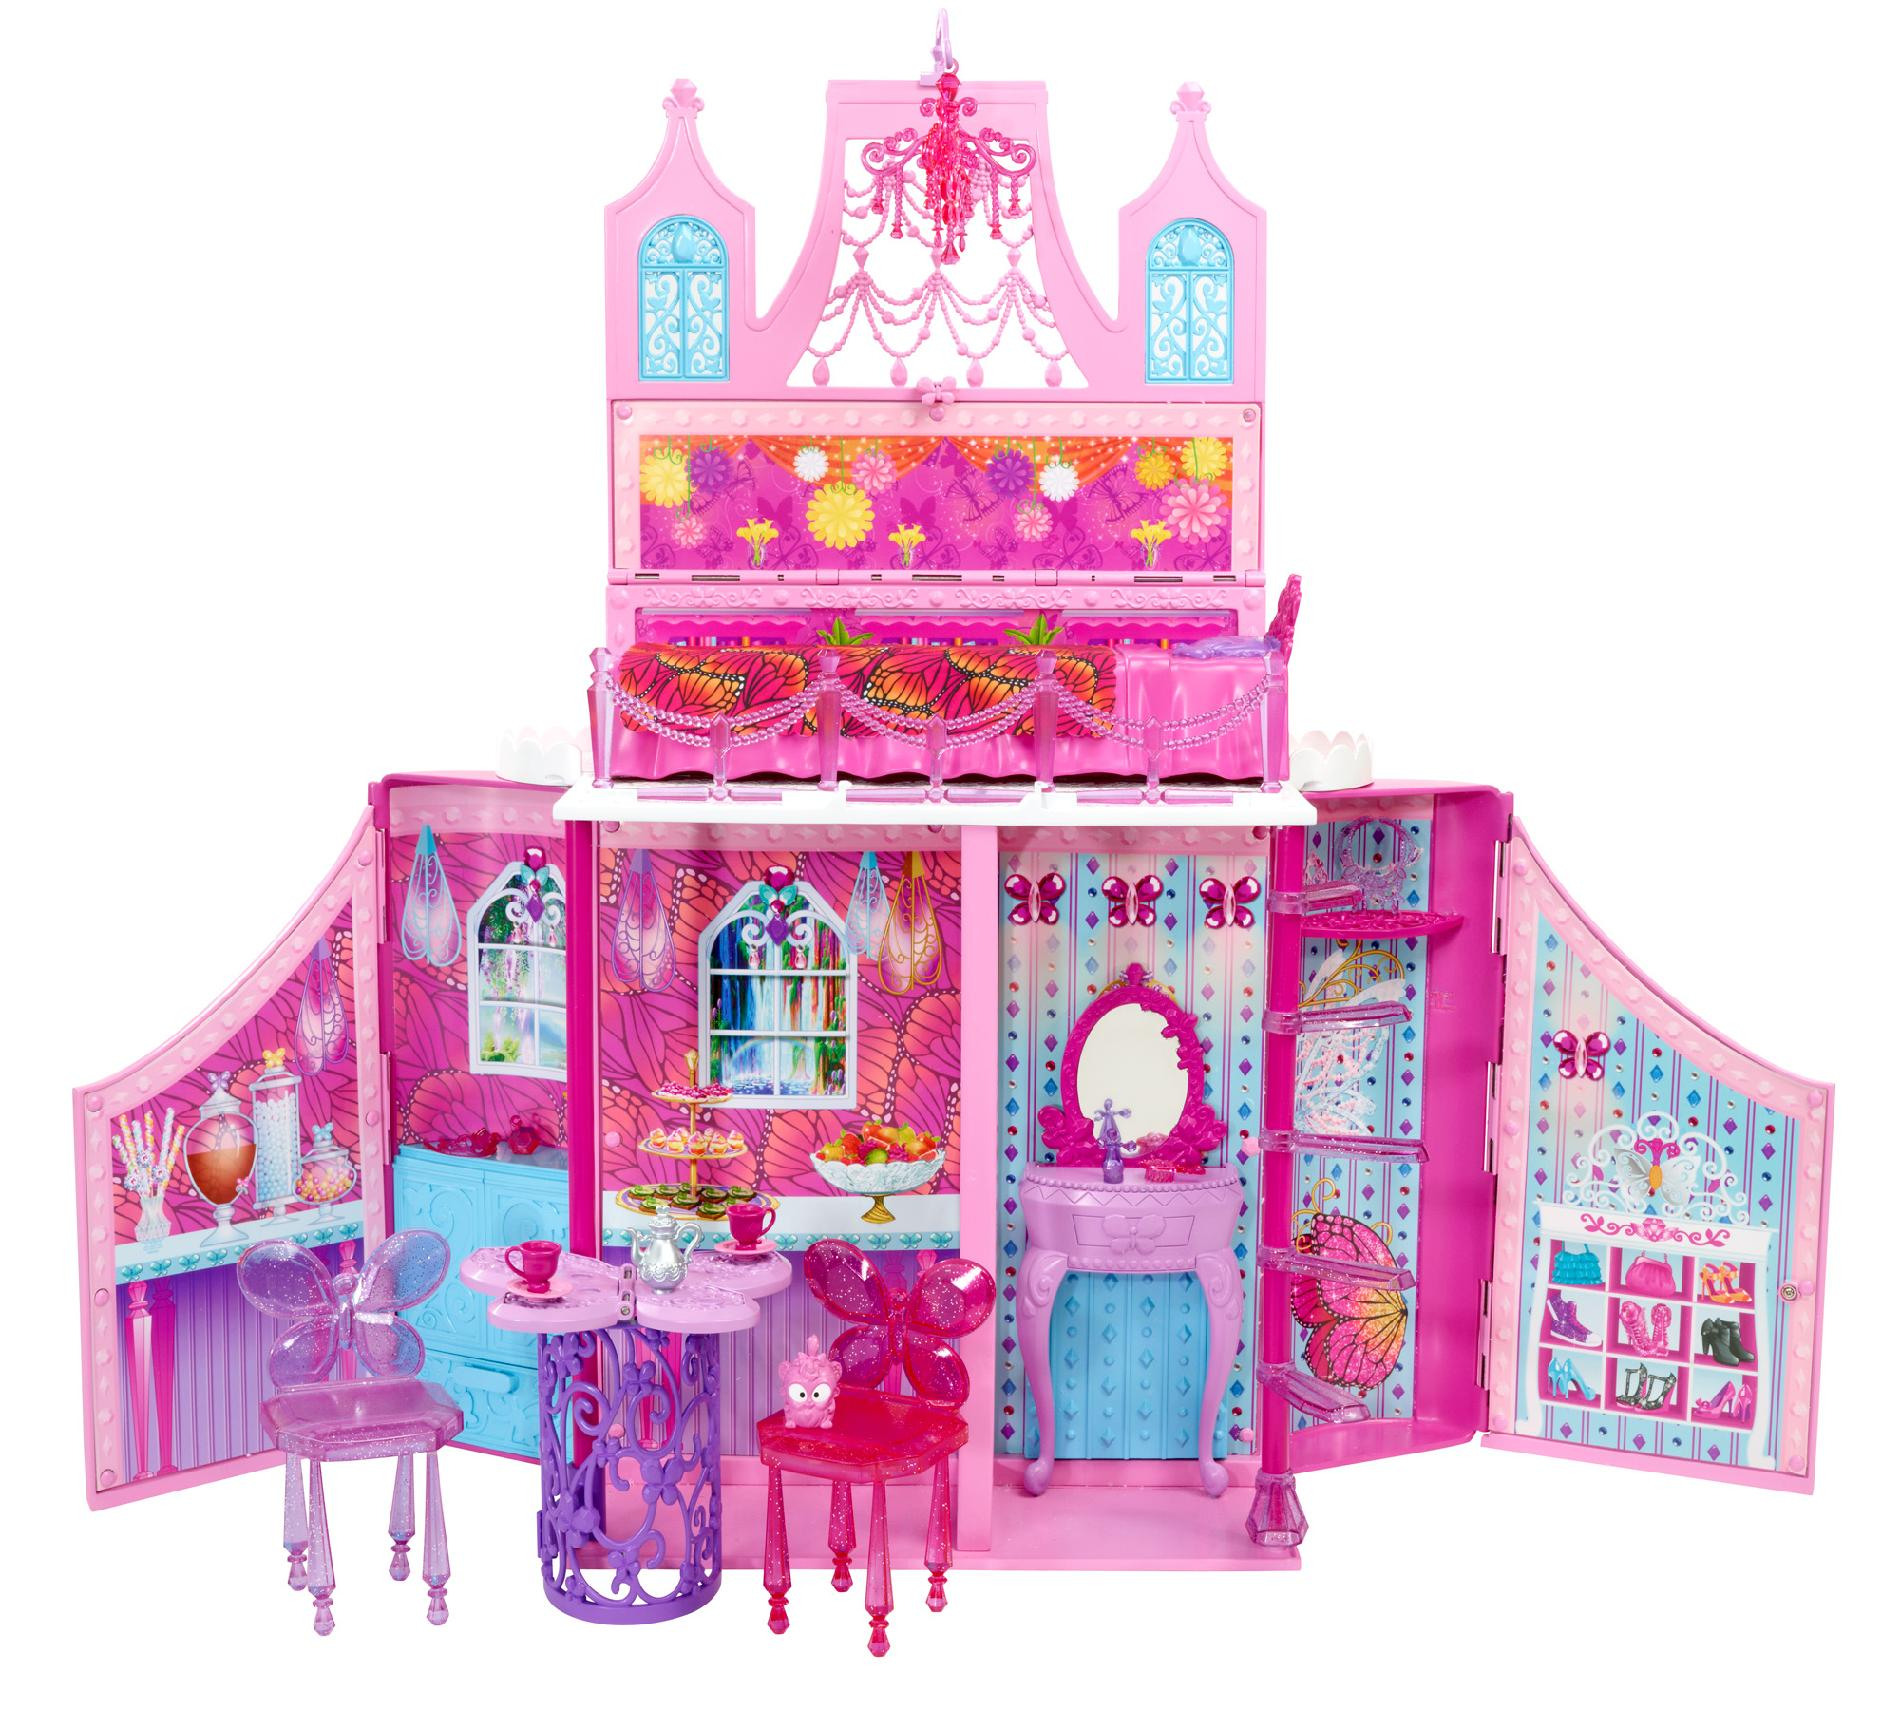 Mariposa and The Fairy Princess Playset